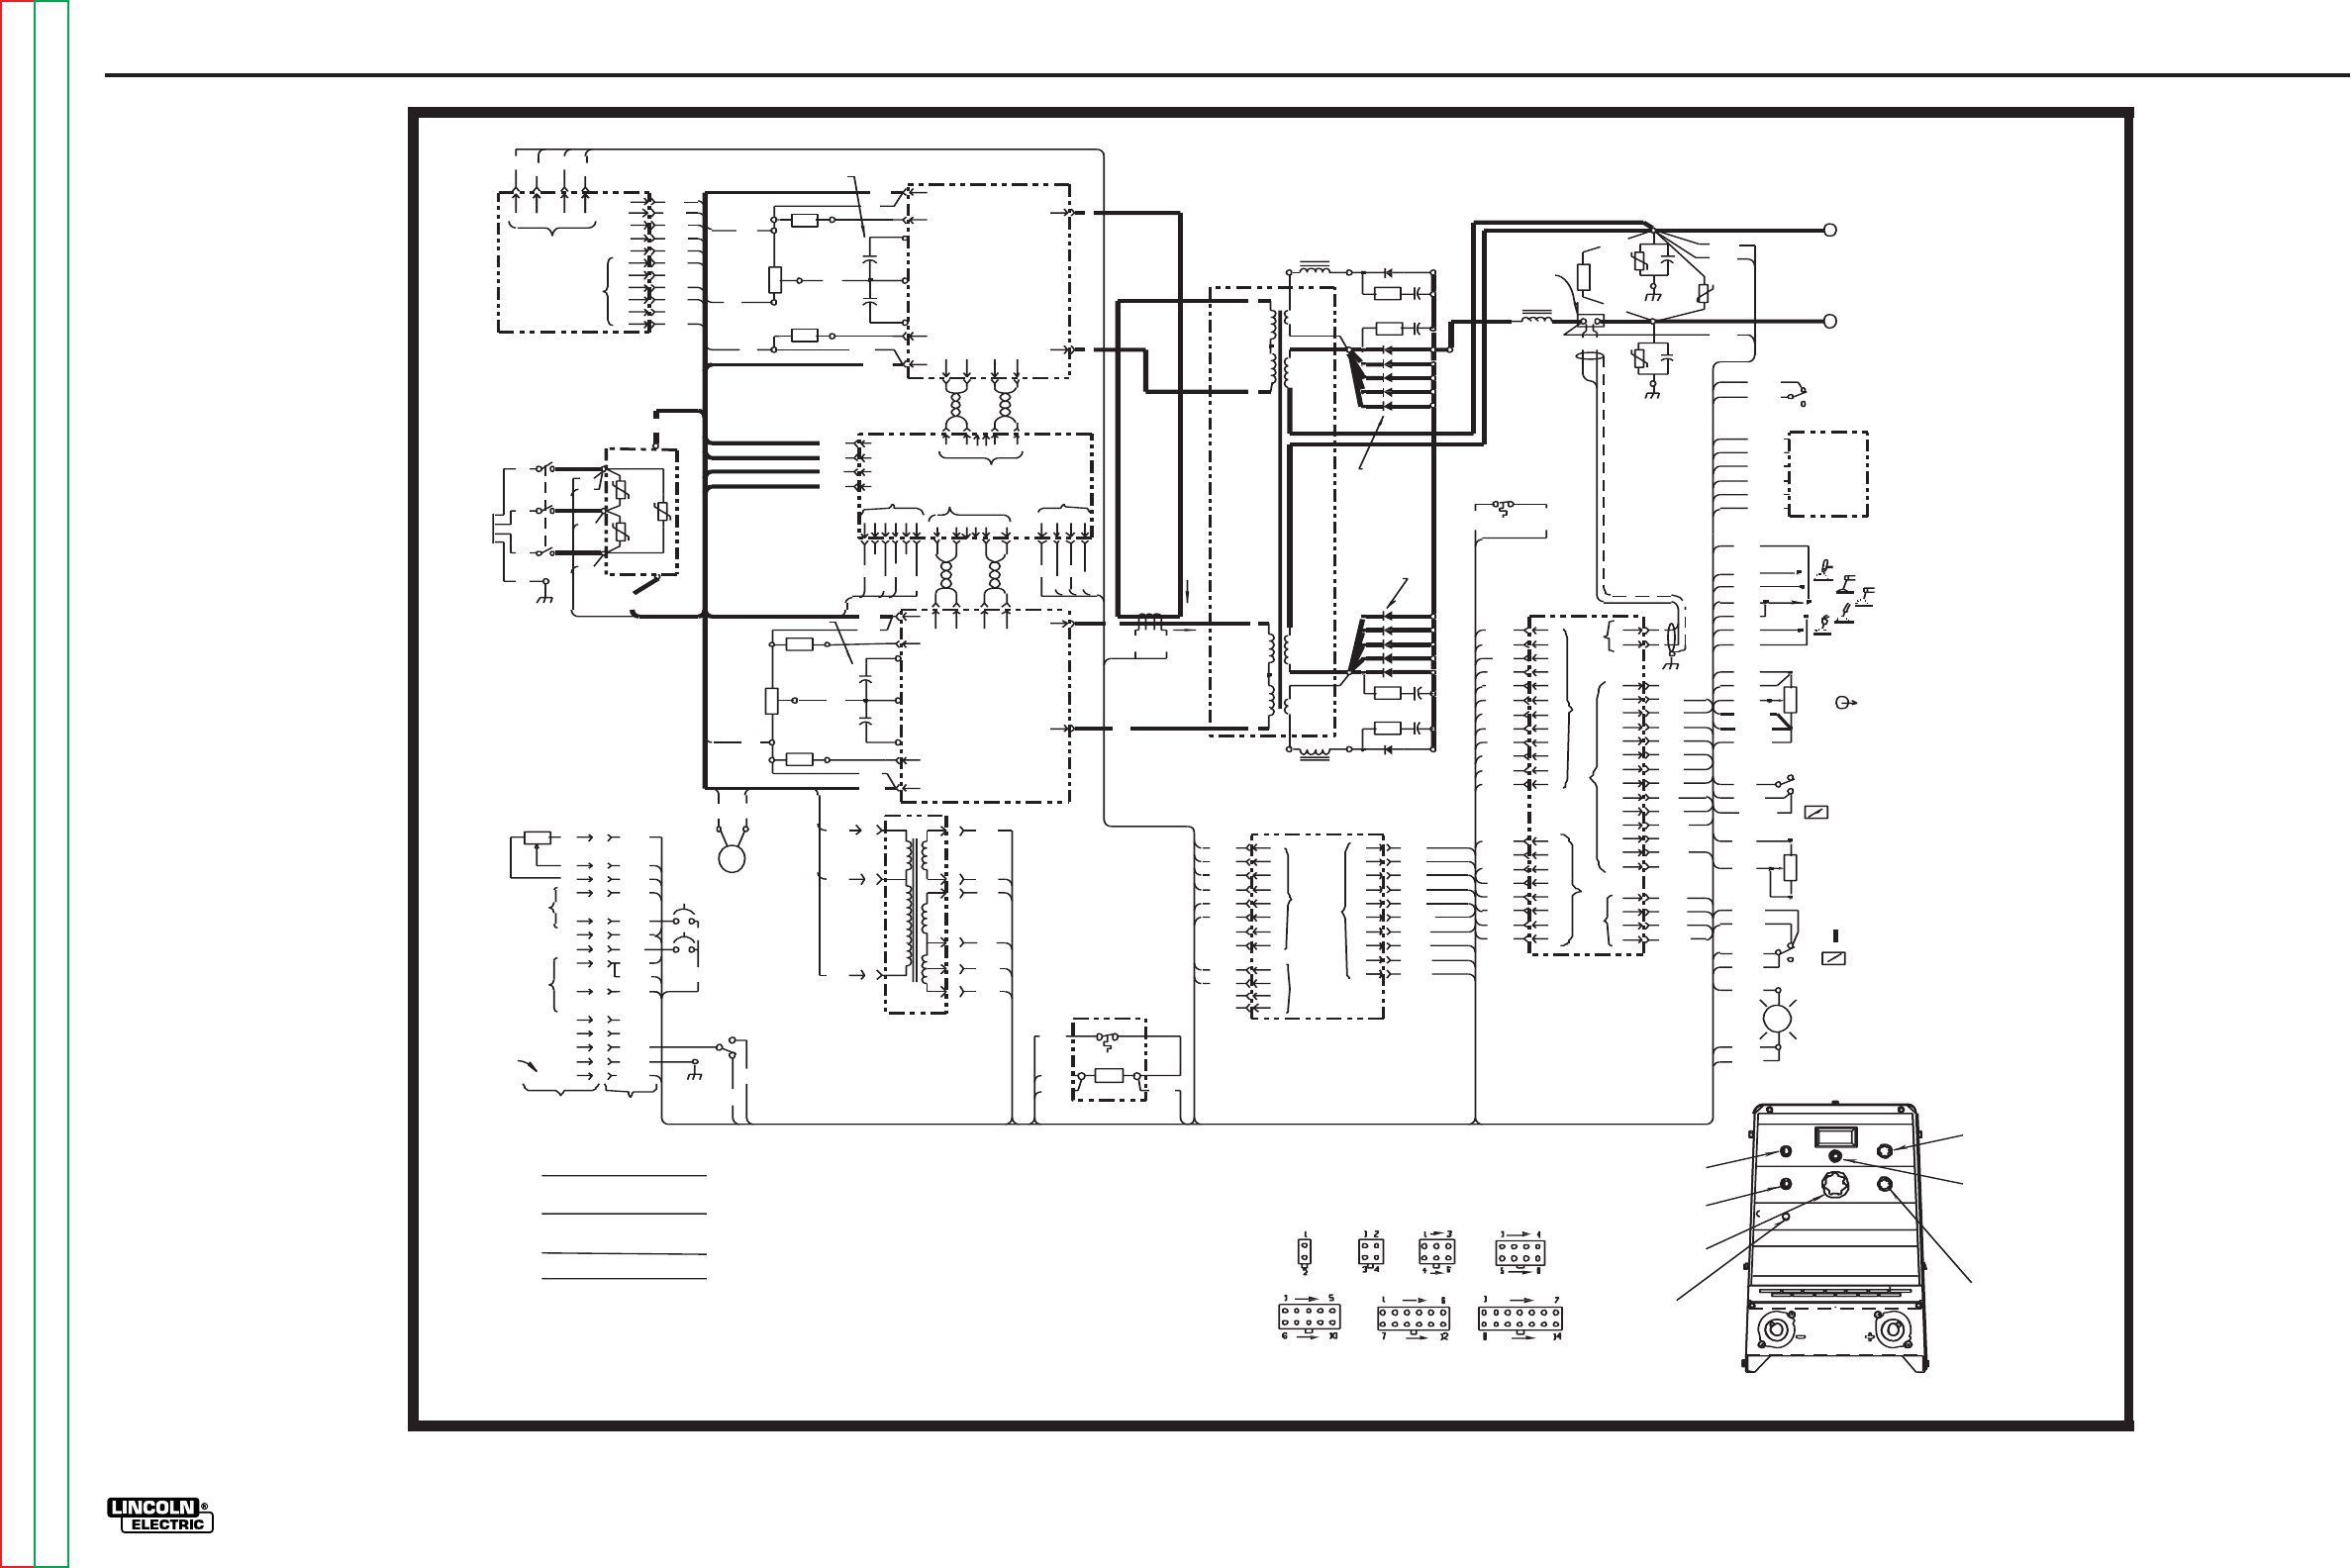 Lincoln Electric Invertec V300 Pro Svm105 B Users Manual Svm105b Pnp 24v Wiring Diagrams For Eyes Photo Electrical G 3